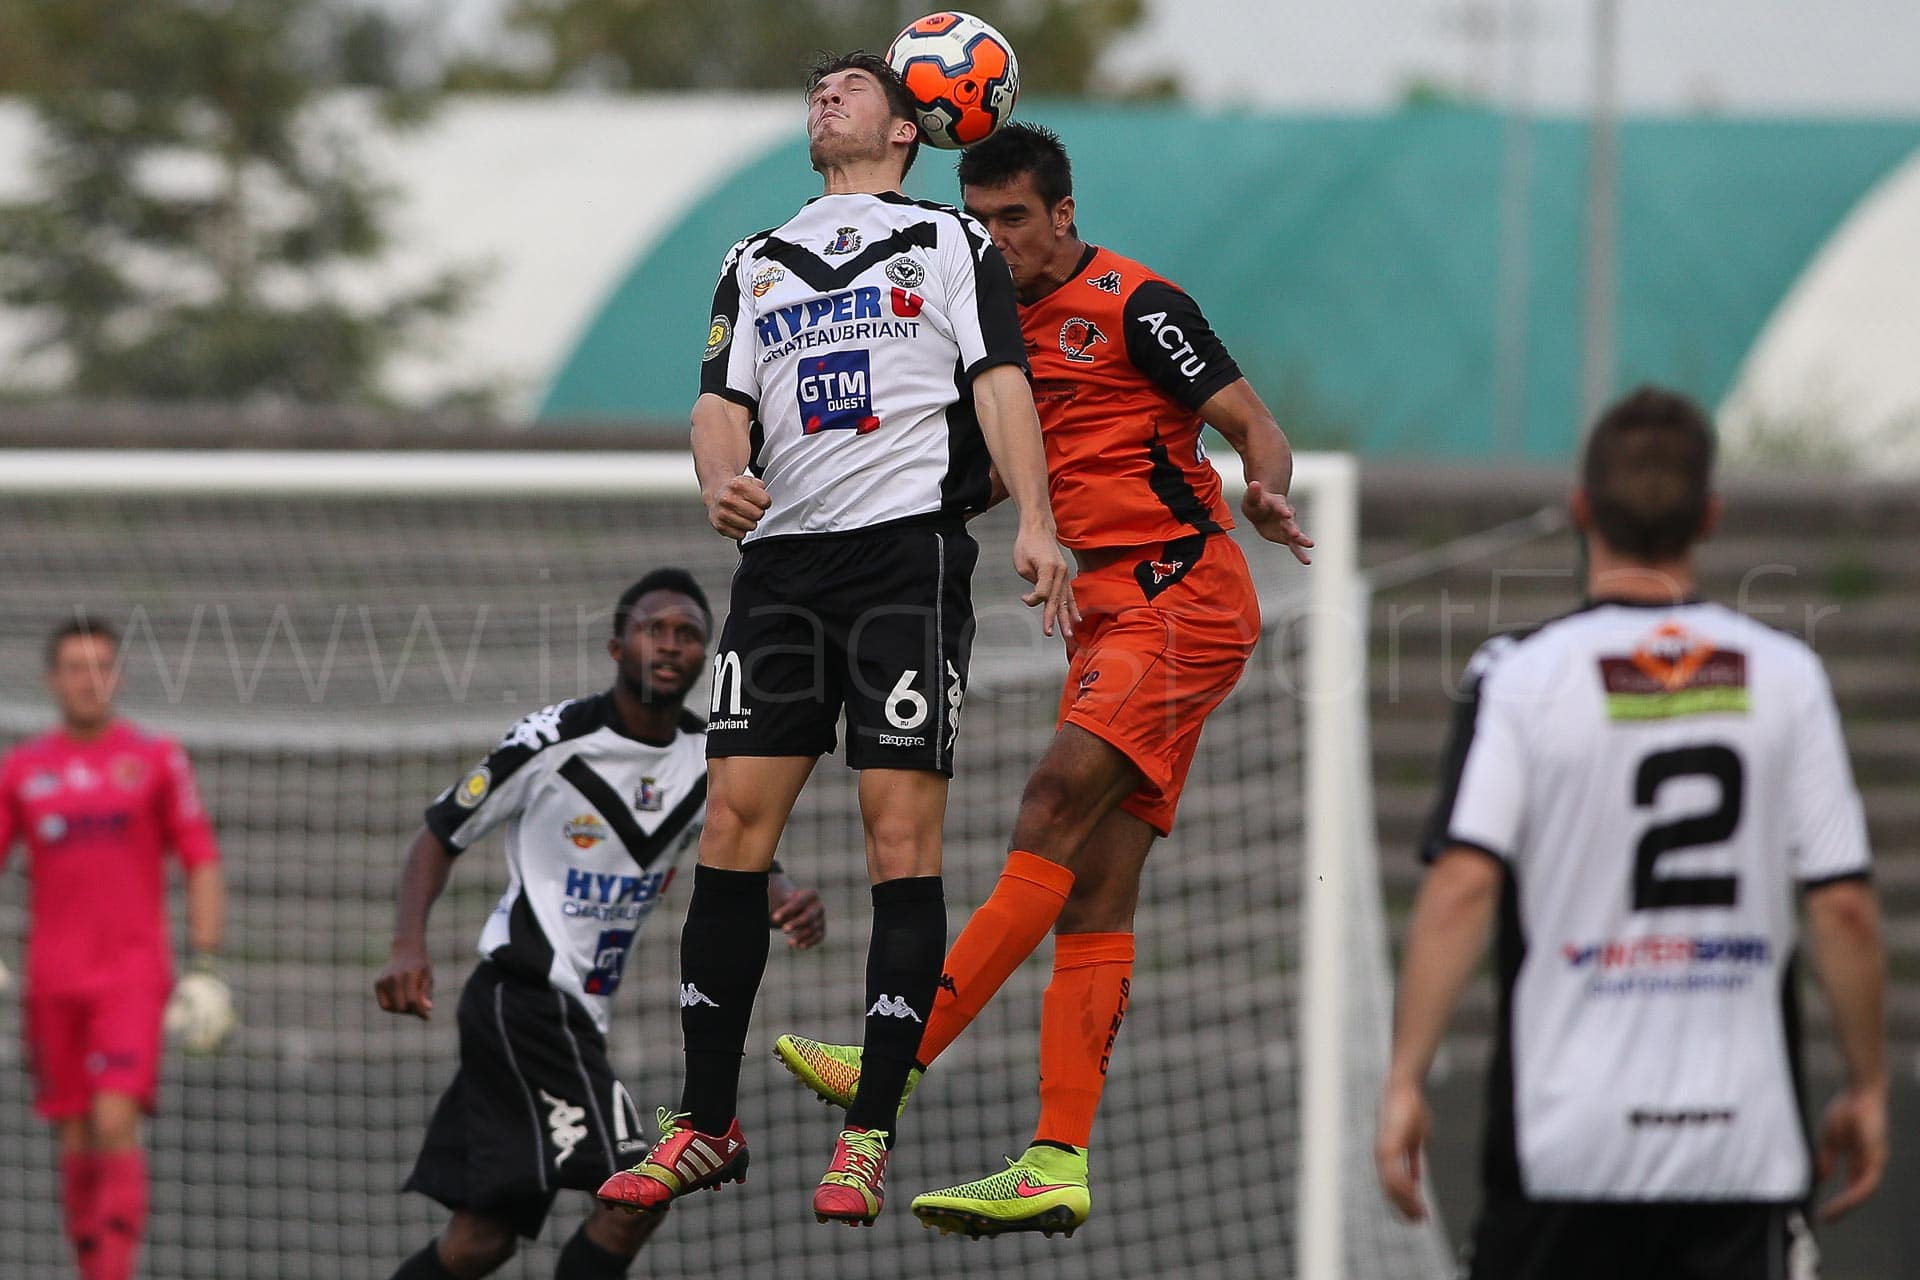 NG-CFA2-1415-J03-Laval-Chateaubriant_11